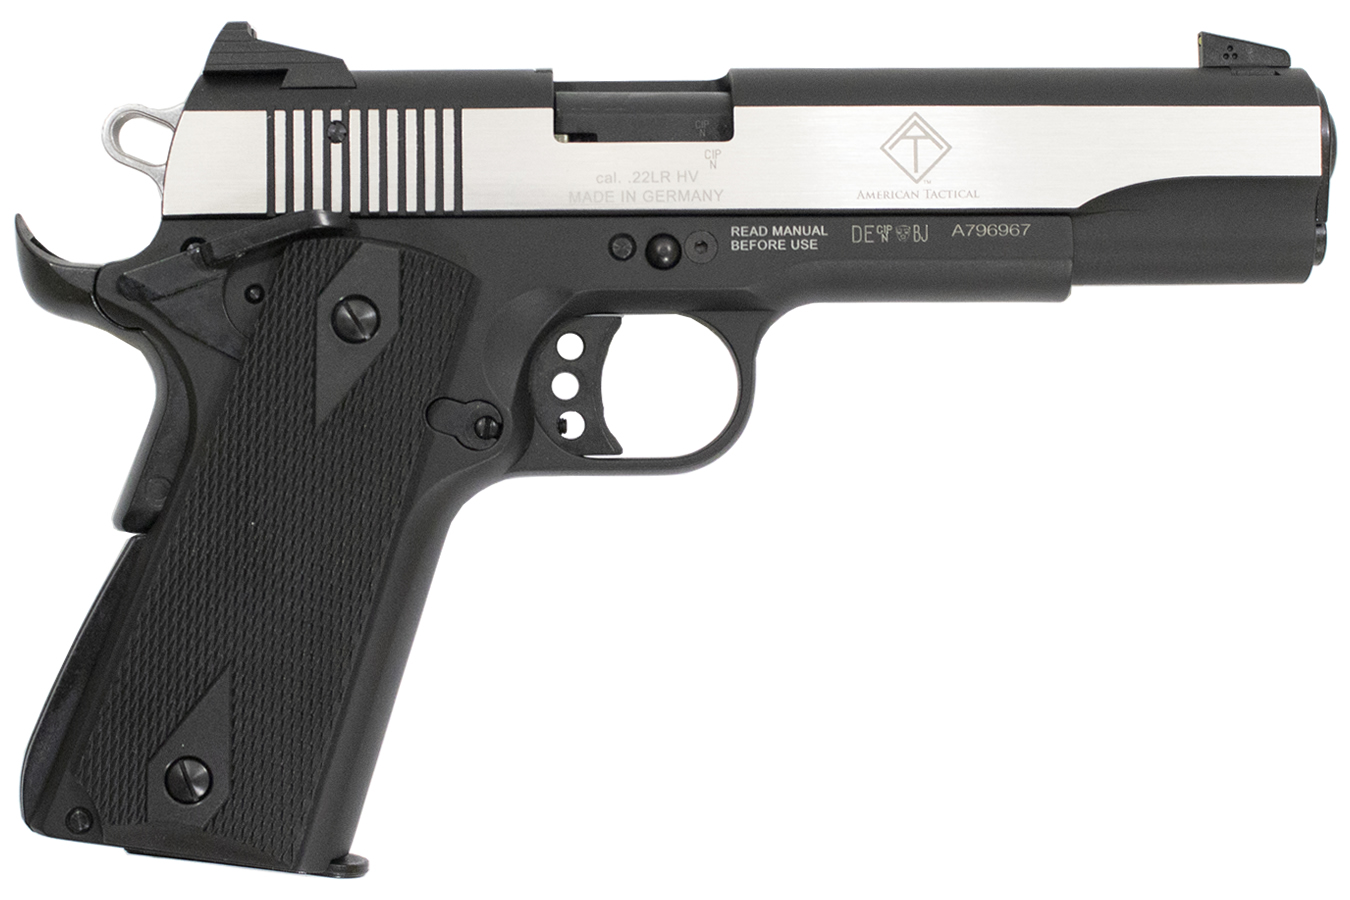 No. 20 Best Selling: GSG GSG M1911 22LR RIMFIRE PISTOL WITH 5-INCH BARREL